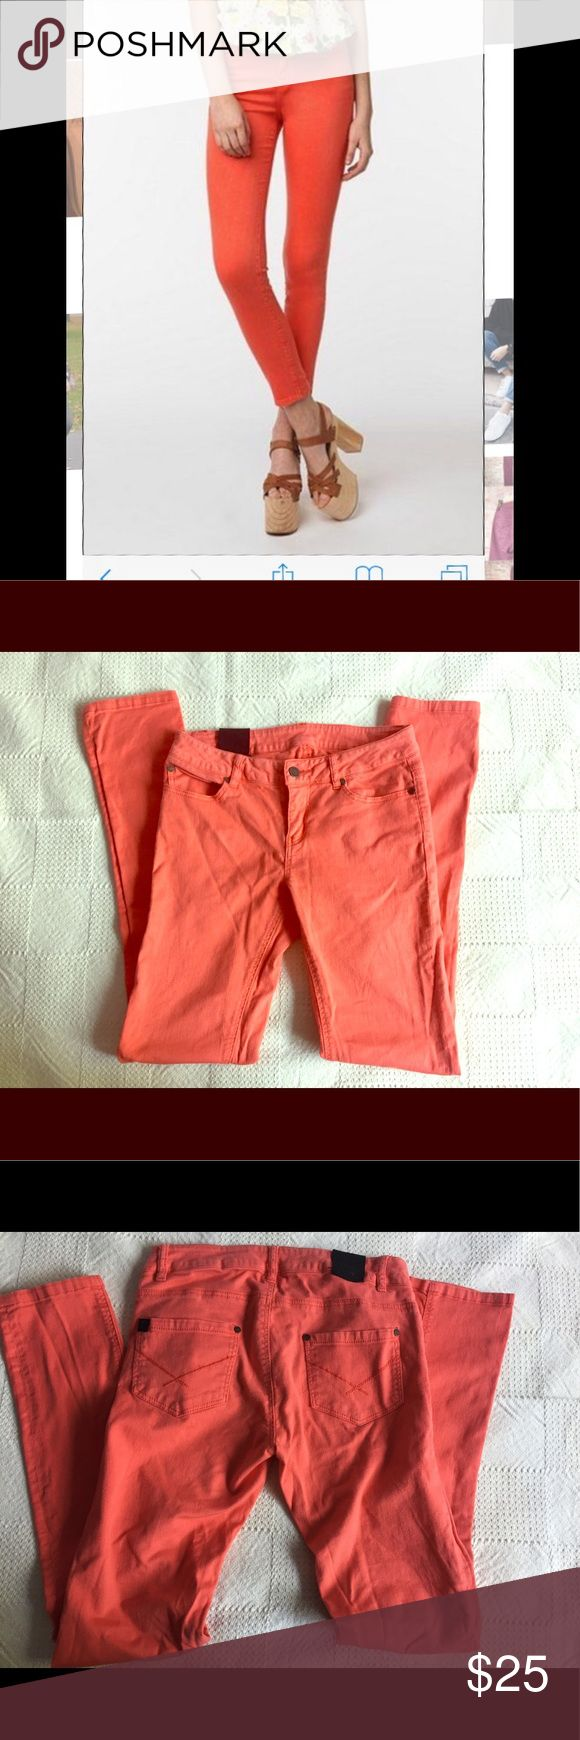 UO Insight orange skinny jeans size 27. Mid rise Fun orange skinny jeans from Urban Outfitters. Perfect for summer with the citrus color. In excellent used condition. No flaws. Just wrinkled. Soft lightweight cotton with a tiny bit of stretch. Size 27. Urban Outfitters Jeans Skinny